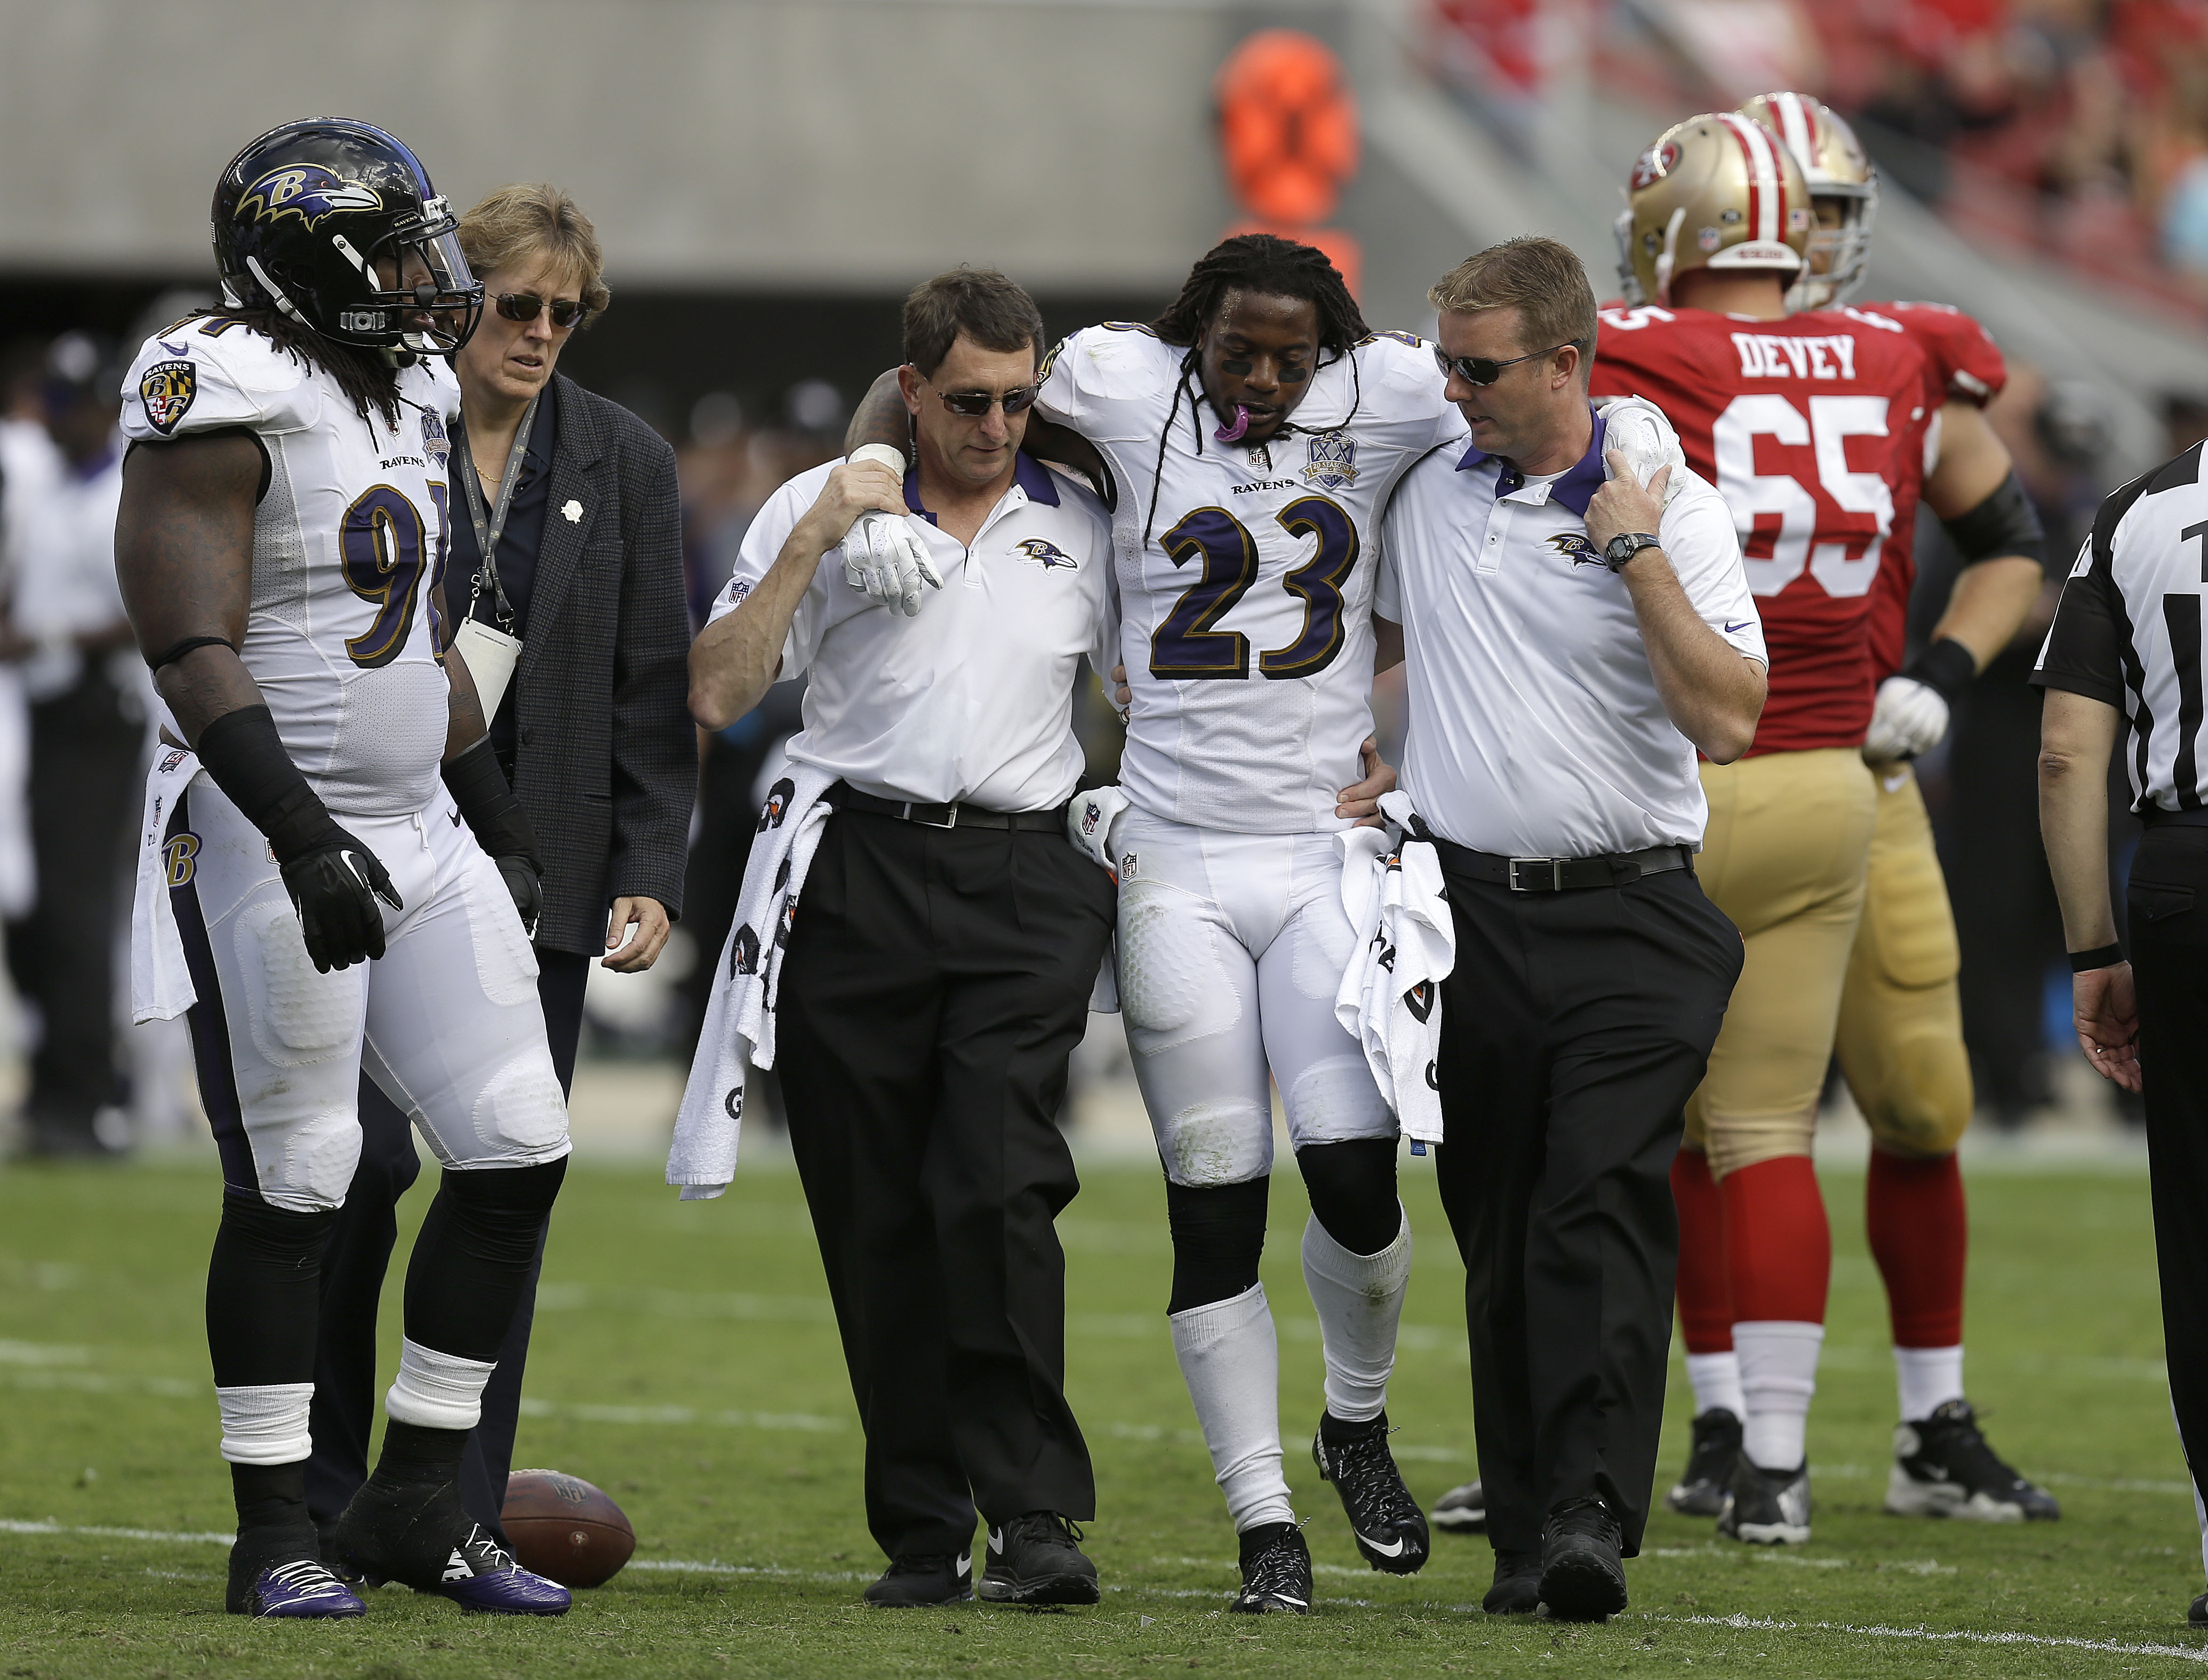 Baltimore Ravens free safety Kendrick Lewis (23) is helped off the field during the second half of an NFL football game against the San Francisco 49ers in Santa Clara, Calif., Sunday, Oct. 18, 2015. (AP Photo/Ben Margot)